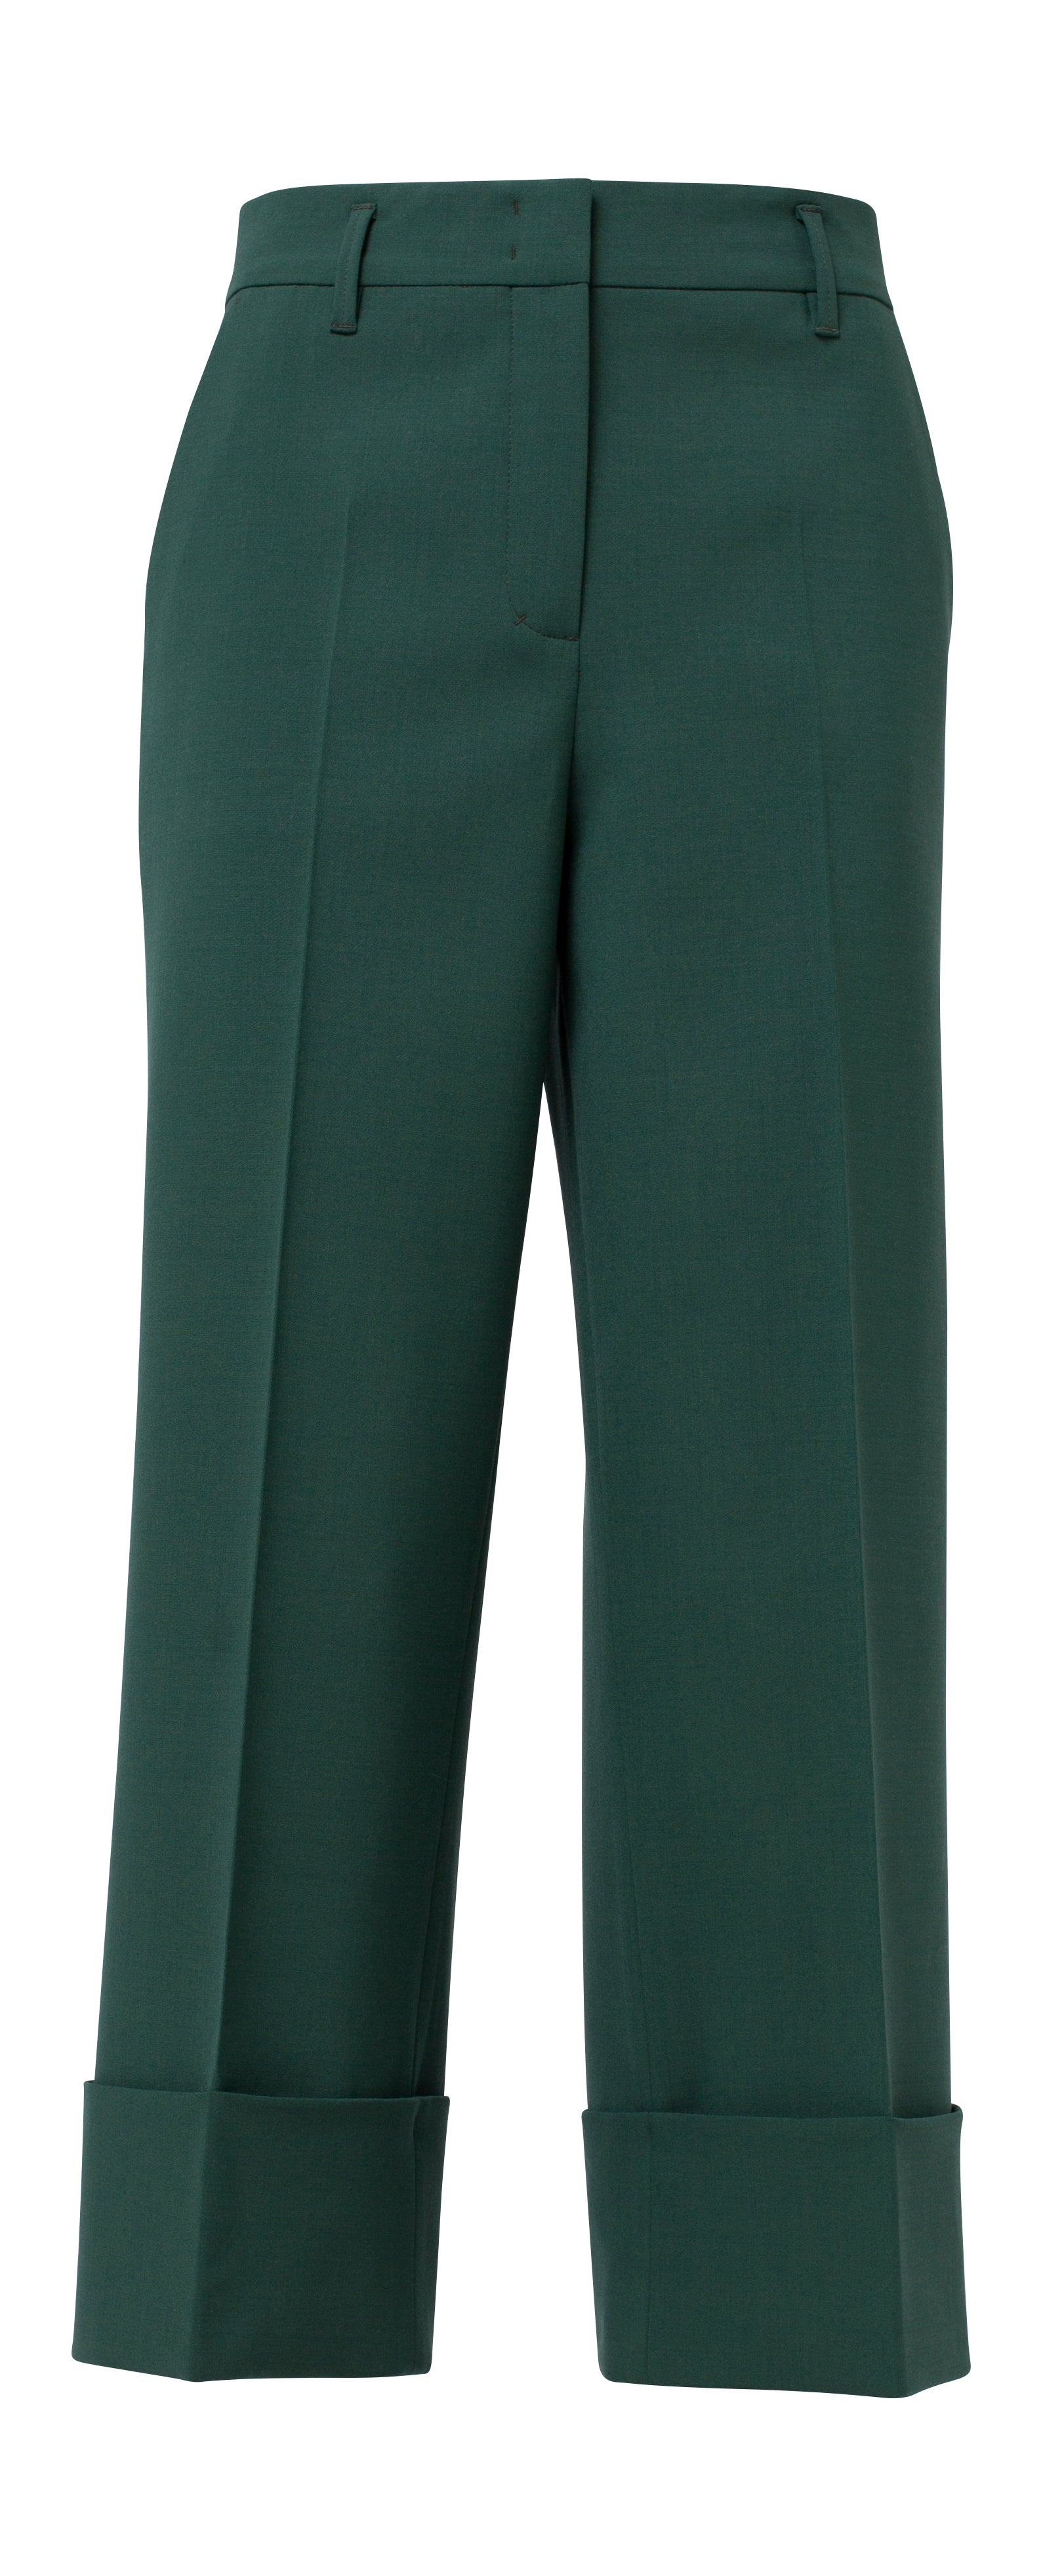 Dorothee Schumacher New Ambition Pants